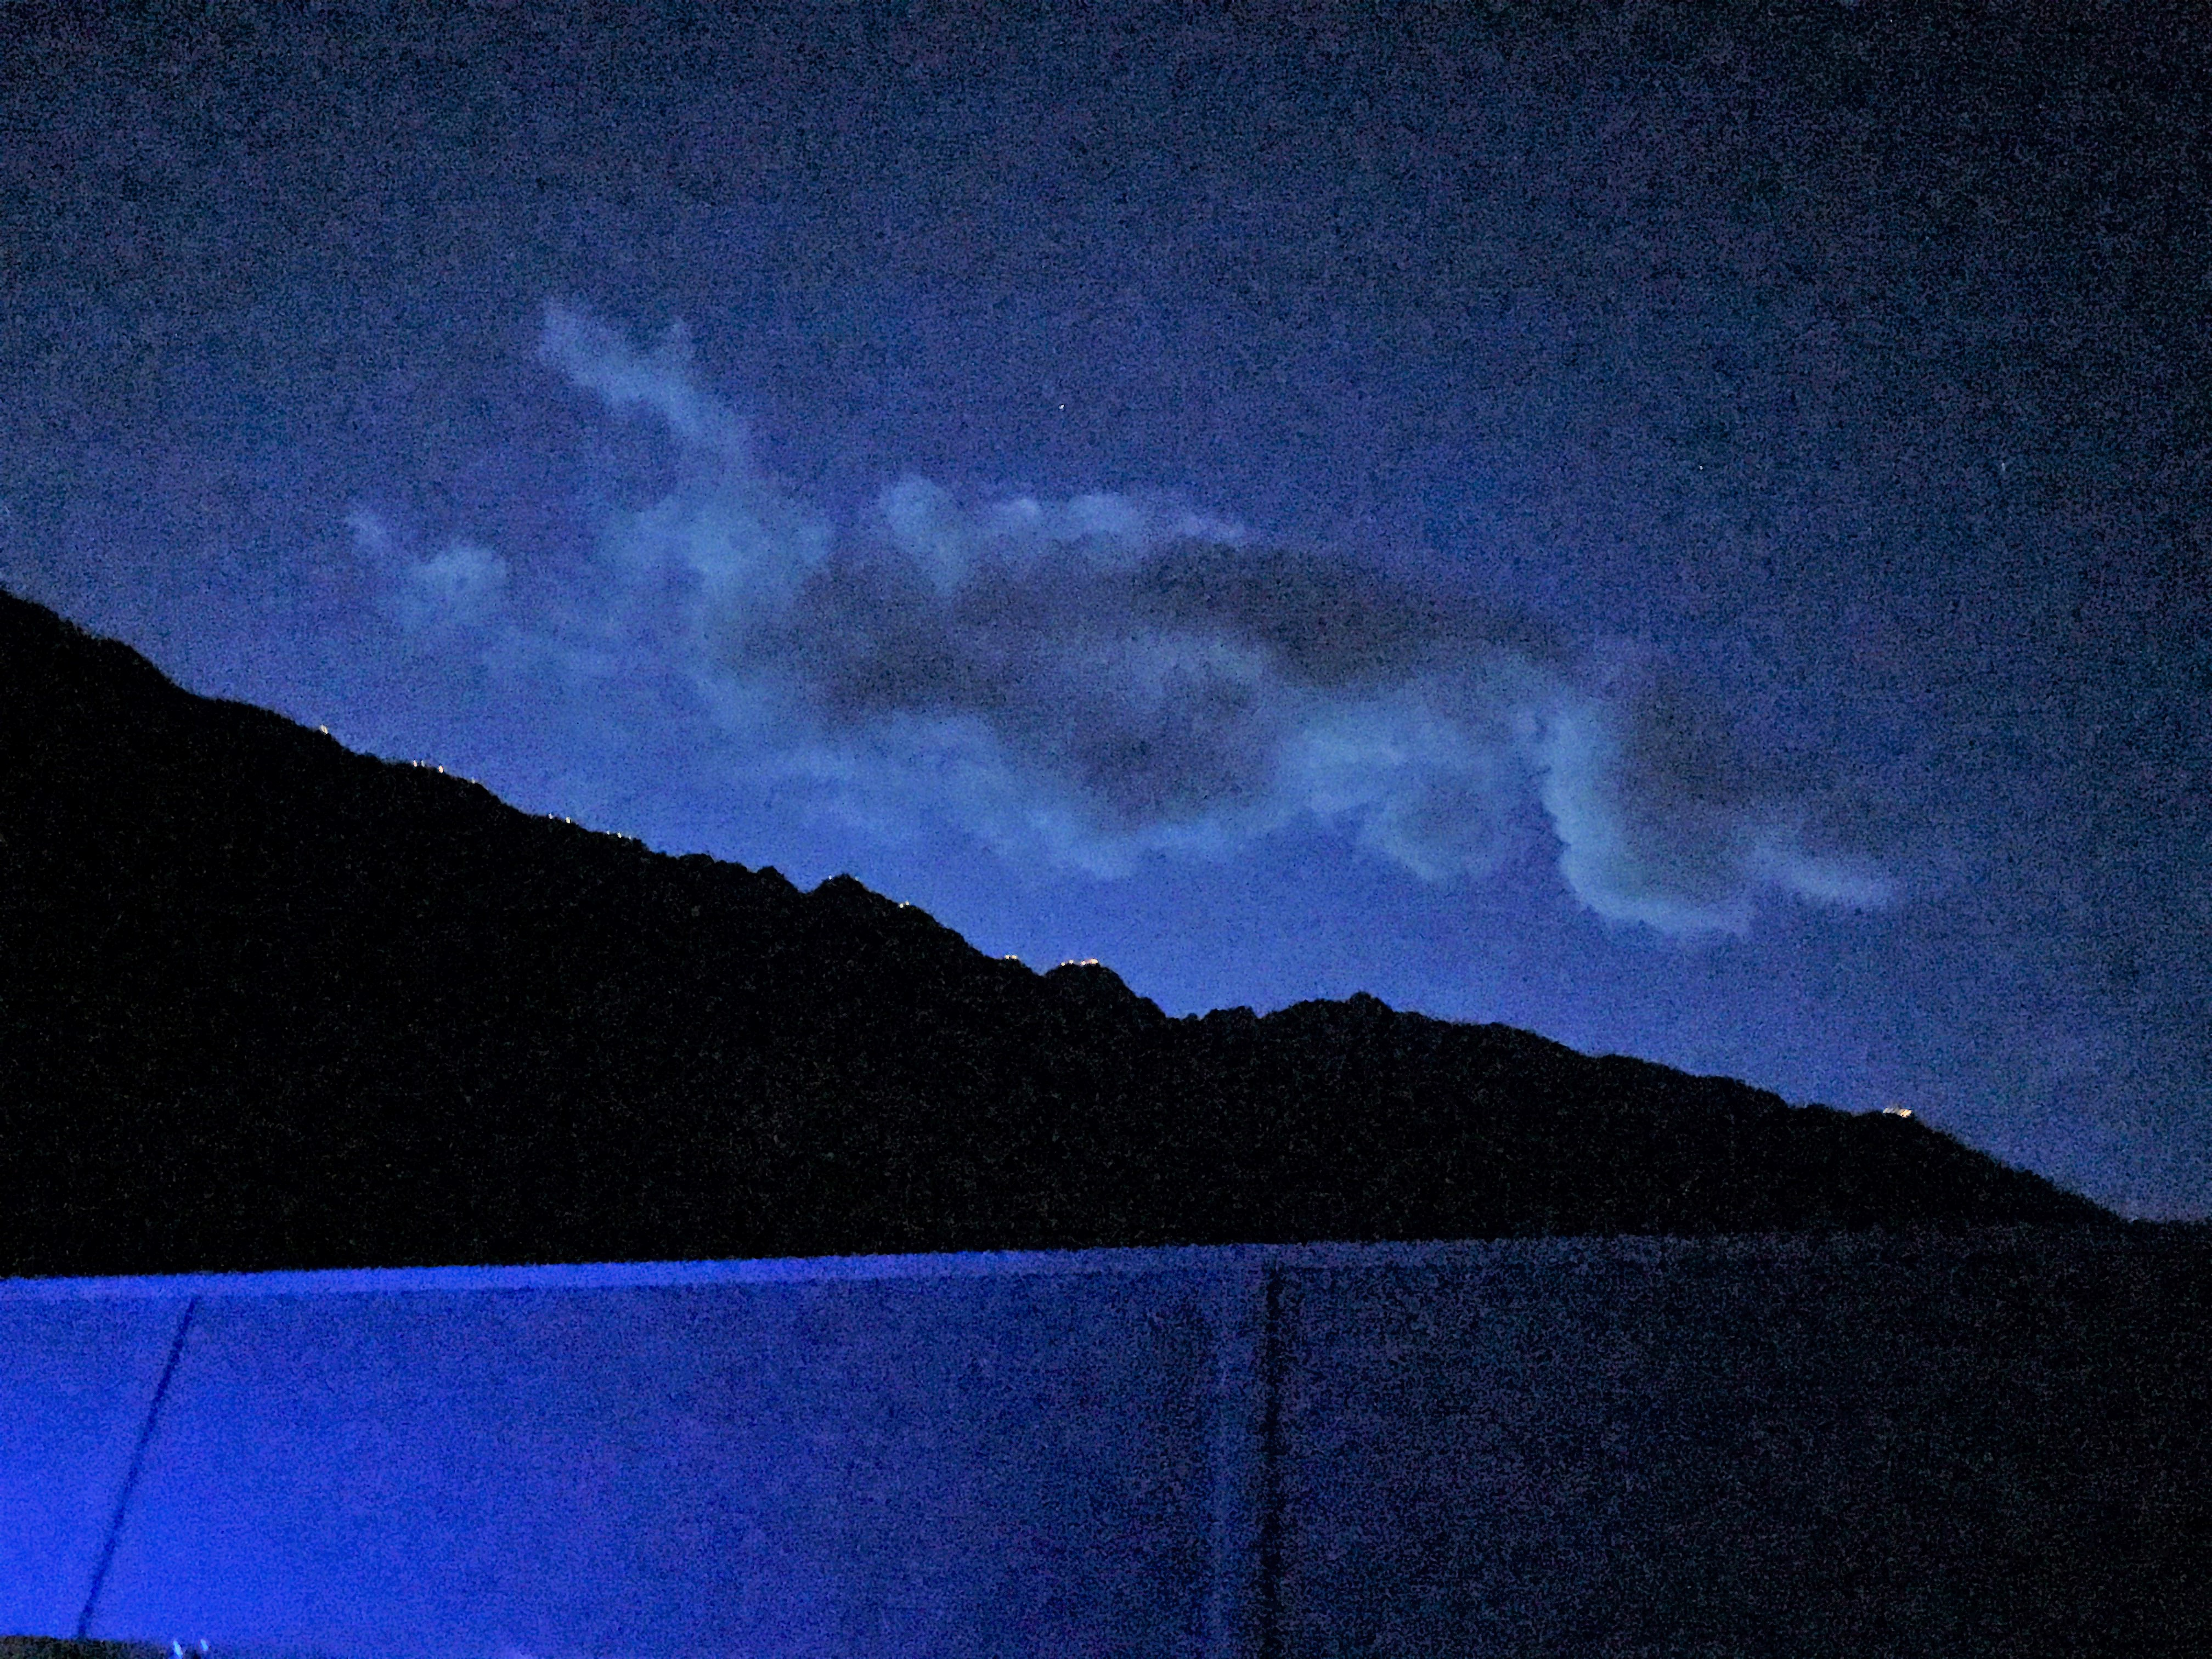 Mountains in Naturns by night